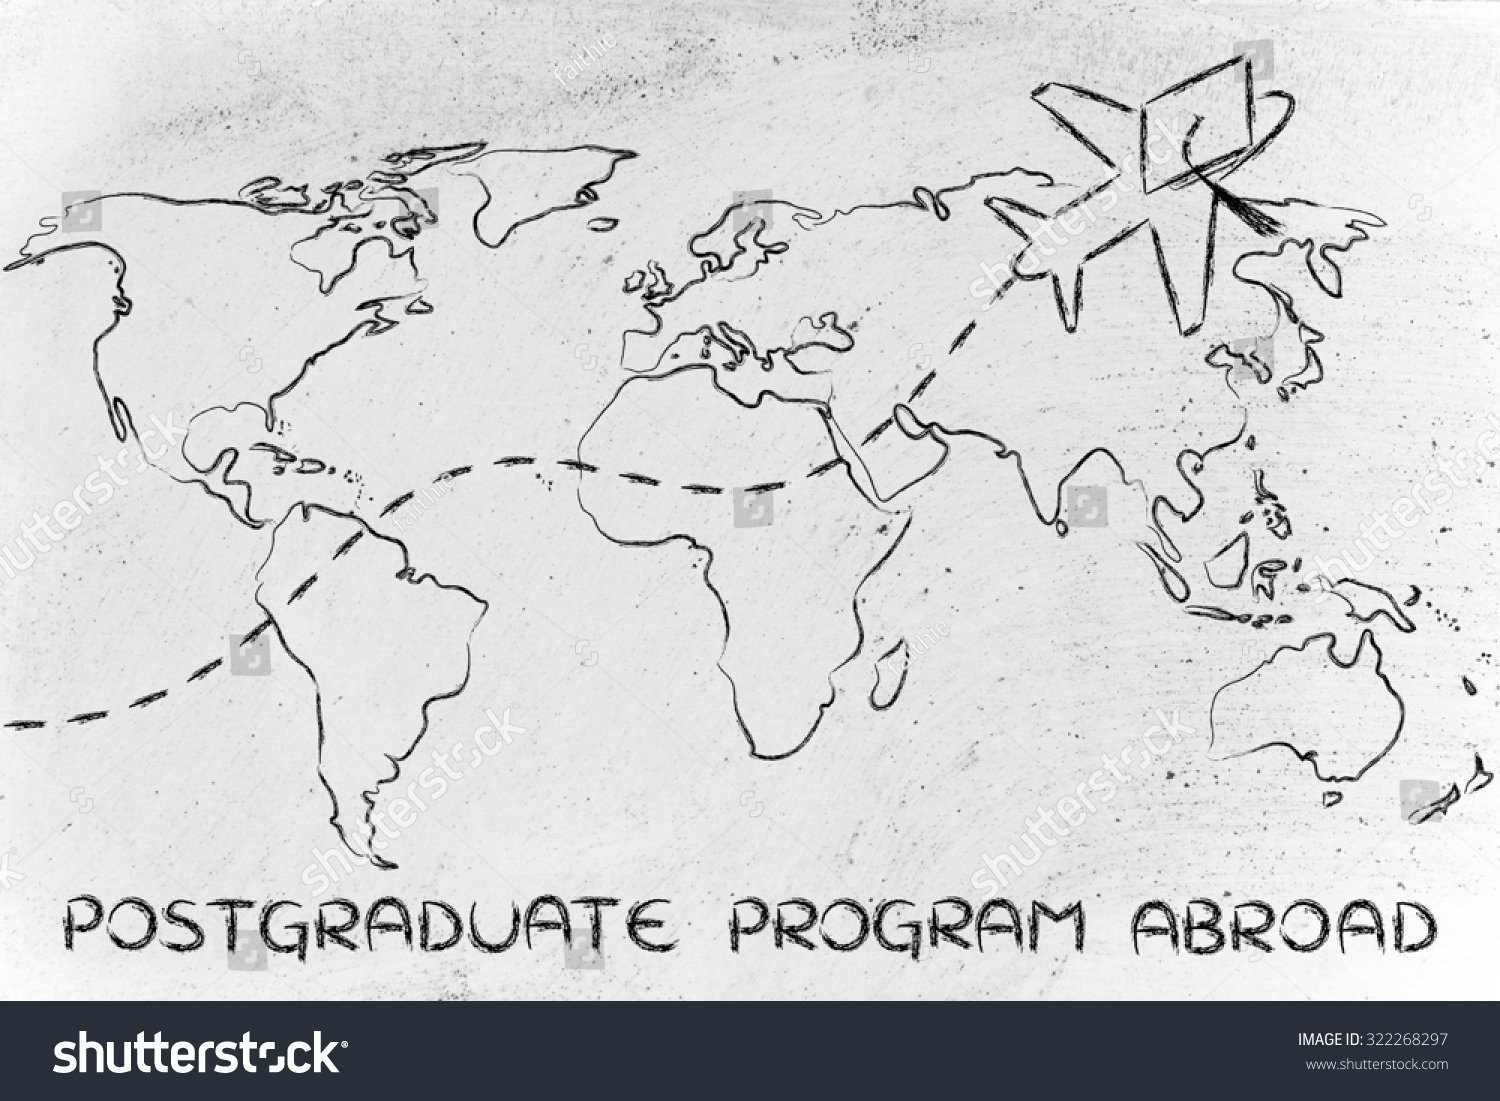 Airplane graduation hat flying above world stock illustration airplane with graduation hat flying above world map concept of postgraduate programs abroad gumiabroncs Image collections